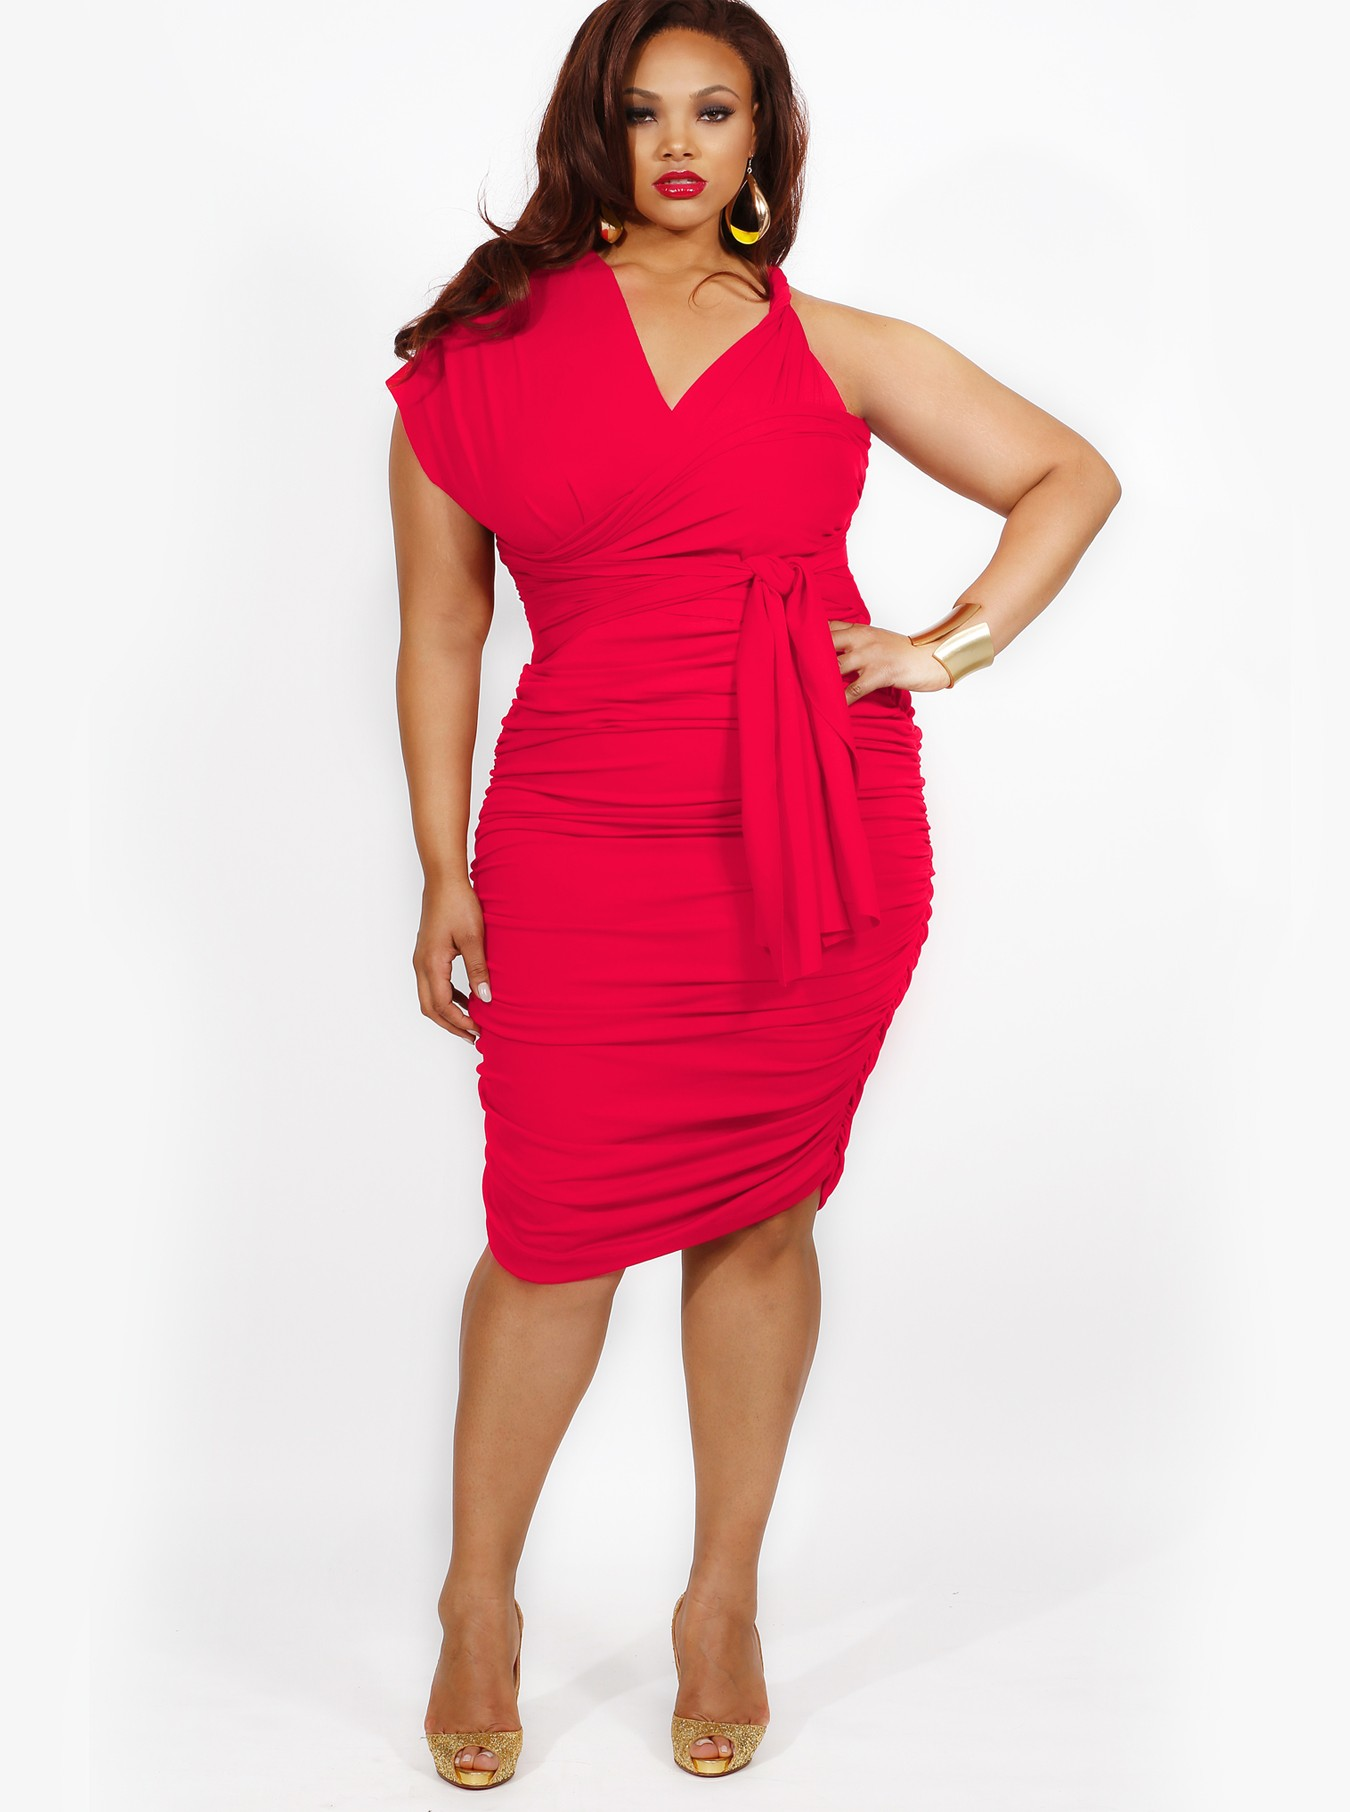 Plus Size Red Dress Vs Little Black Dress Carey Fashion